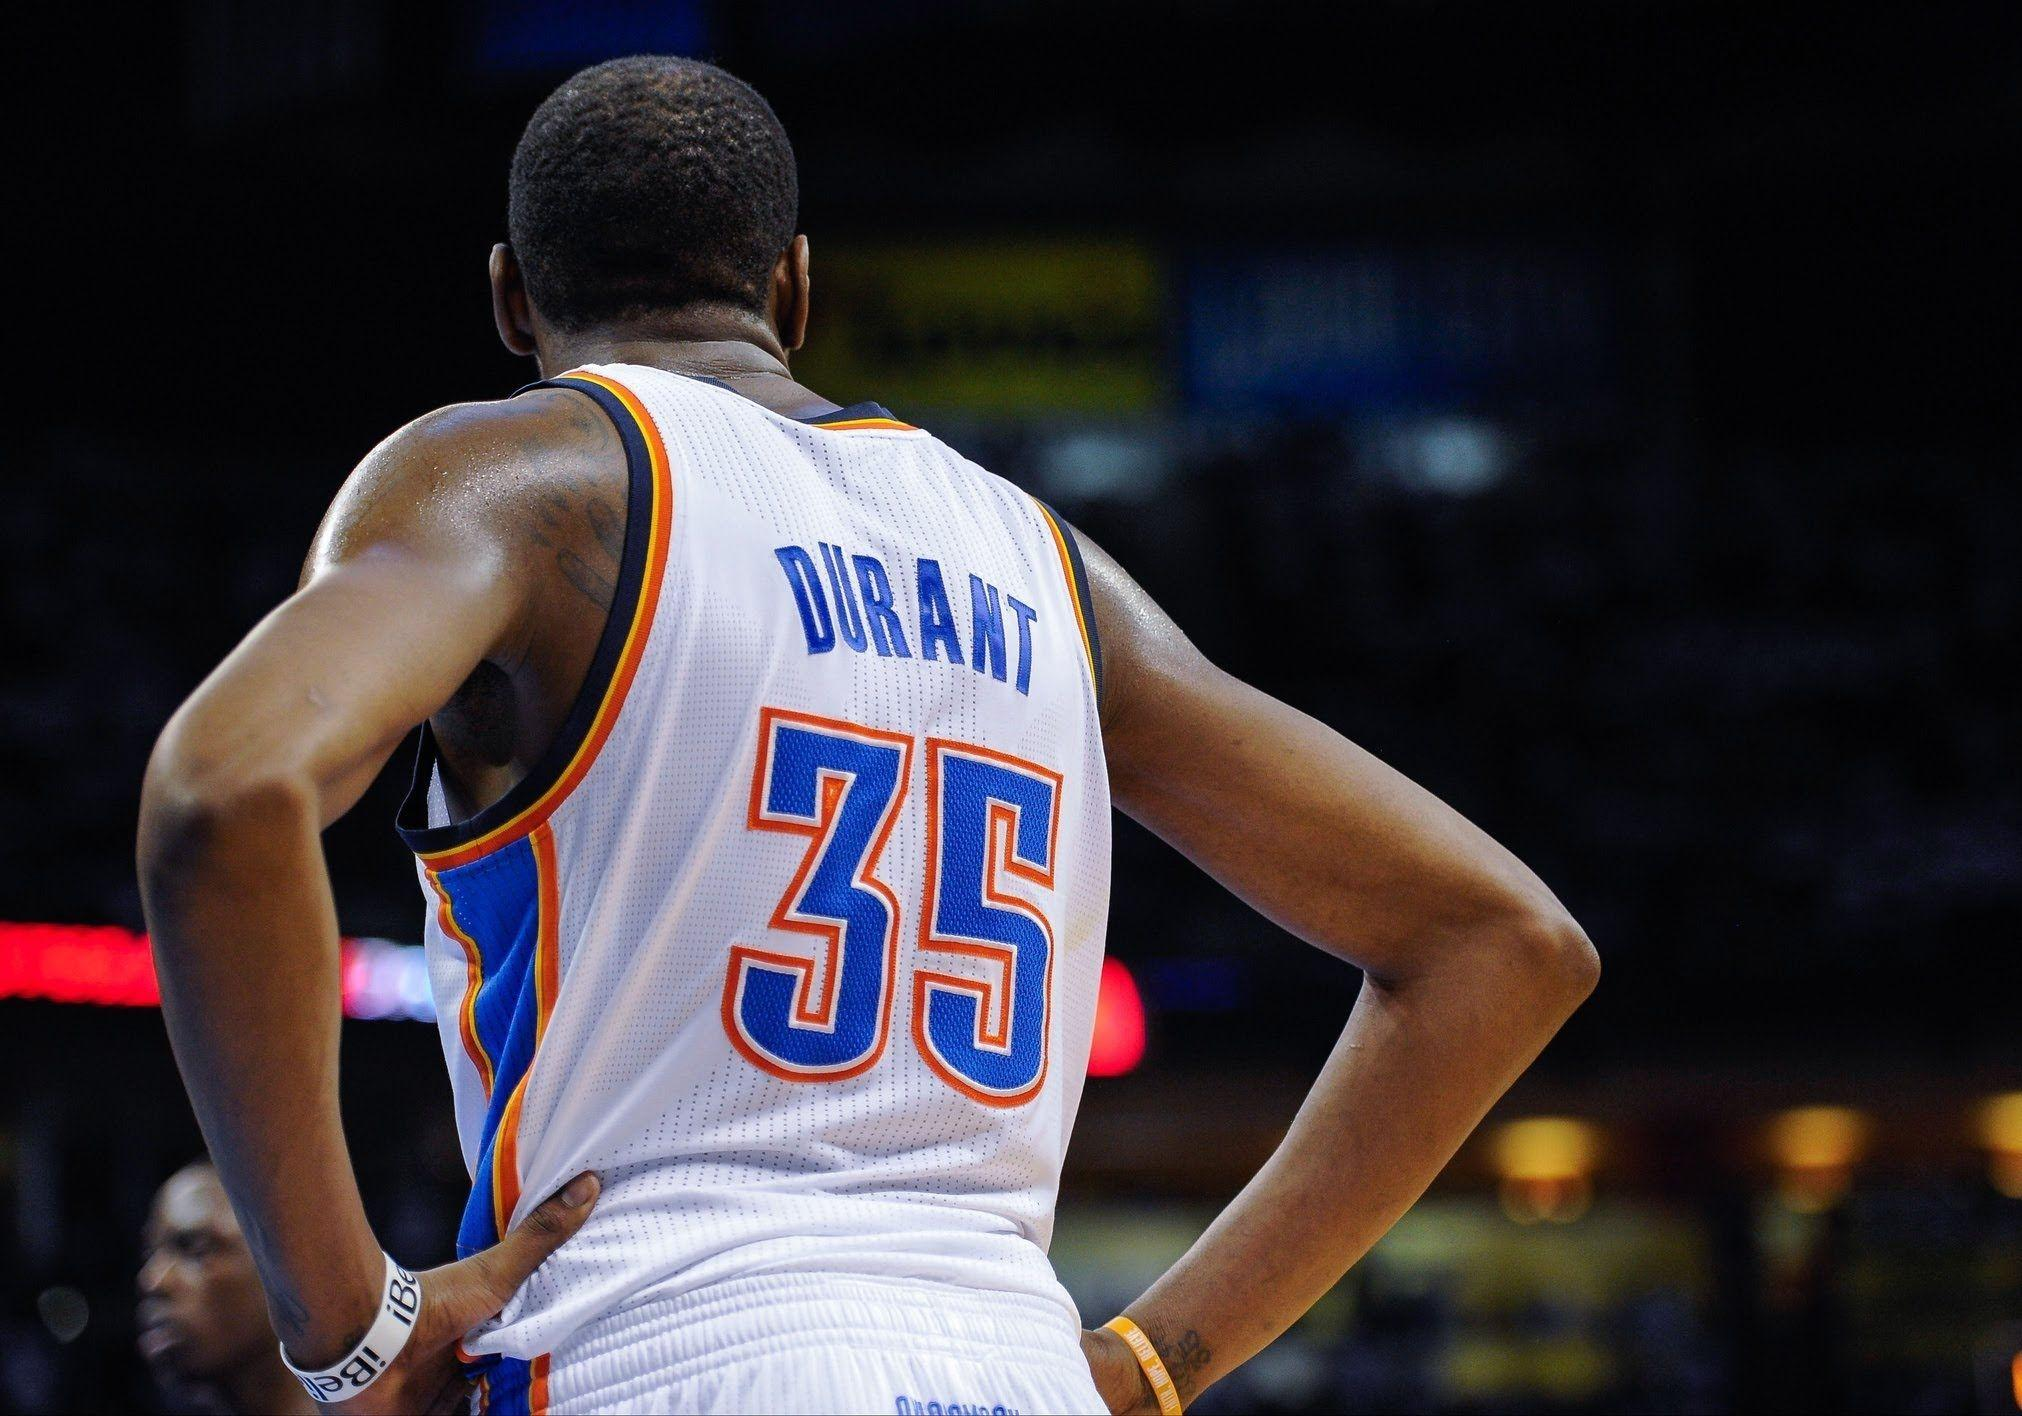 Kevin Durant Wallpapers HD 2017 2022x1416